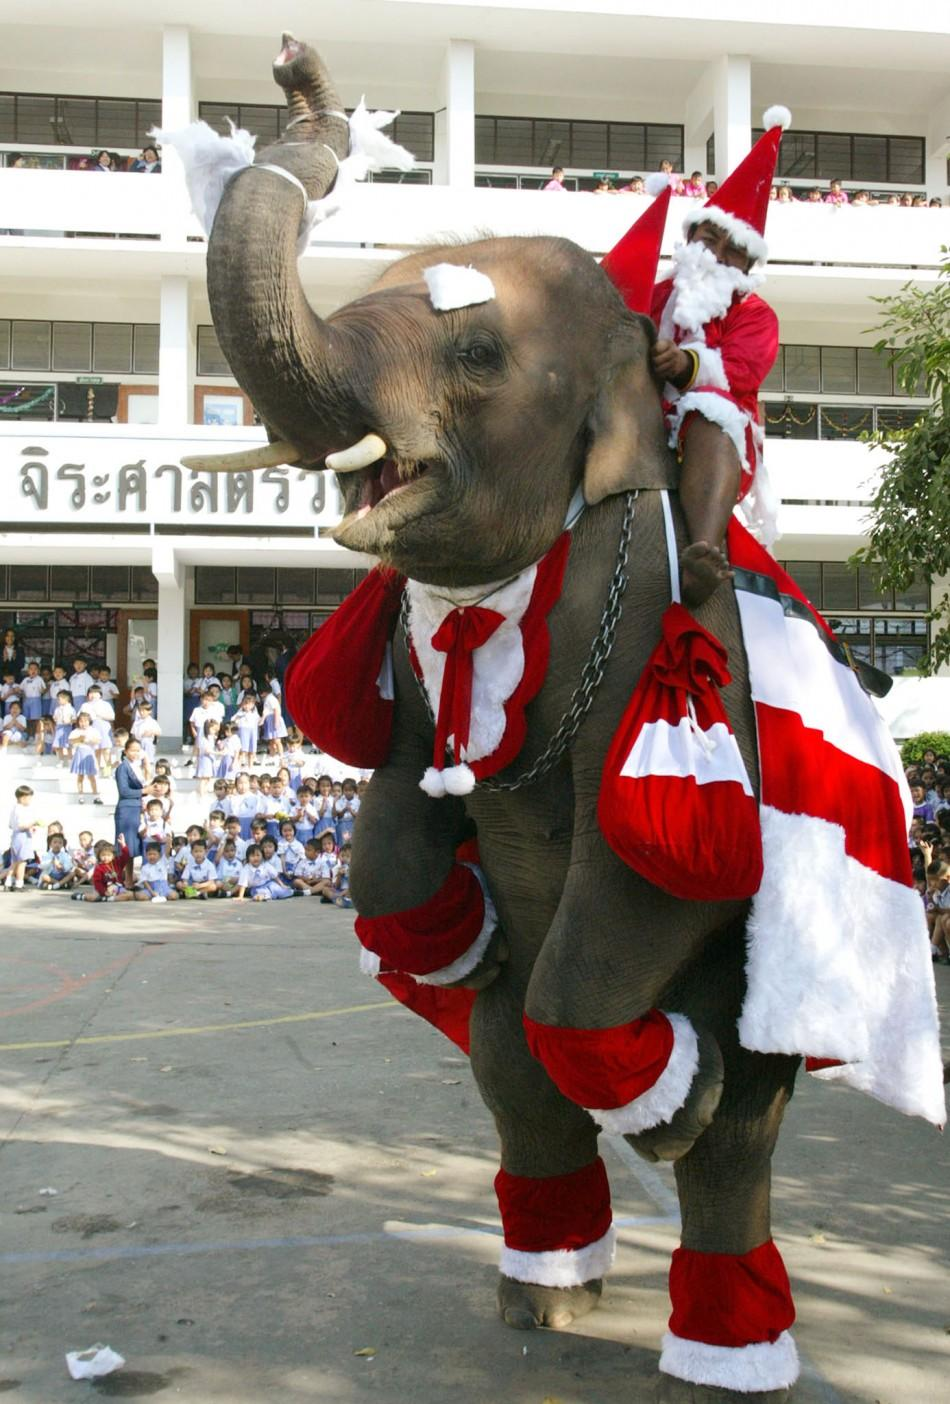 Baby elephant wearing a Santa Claus costume.